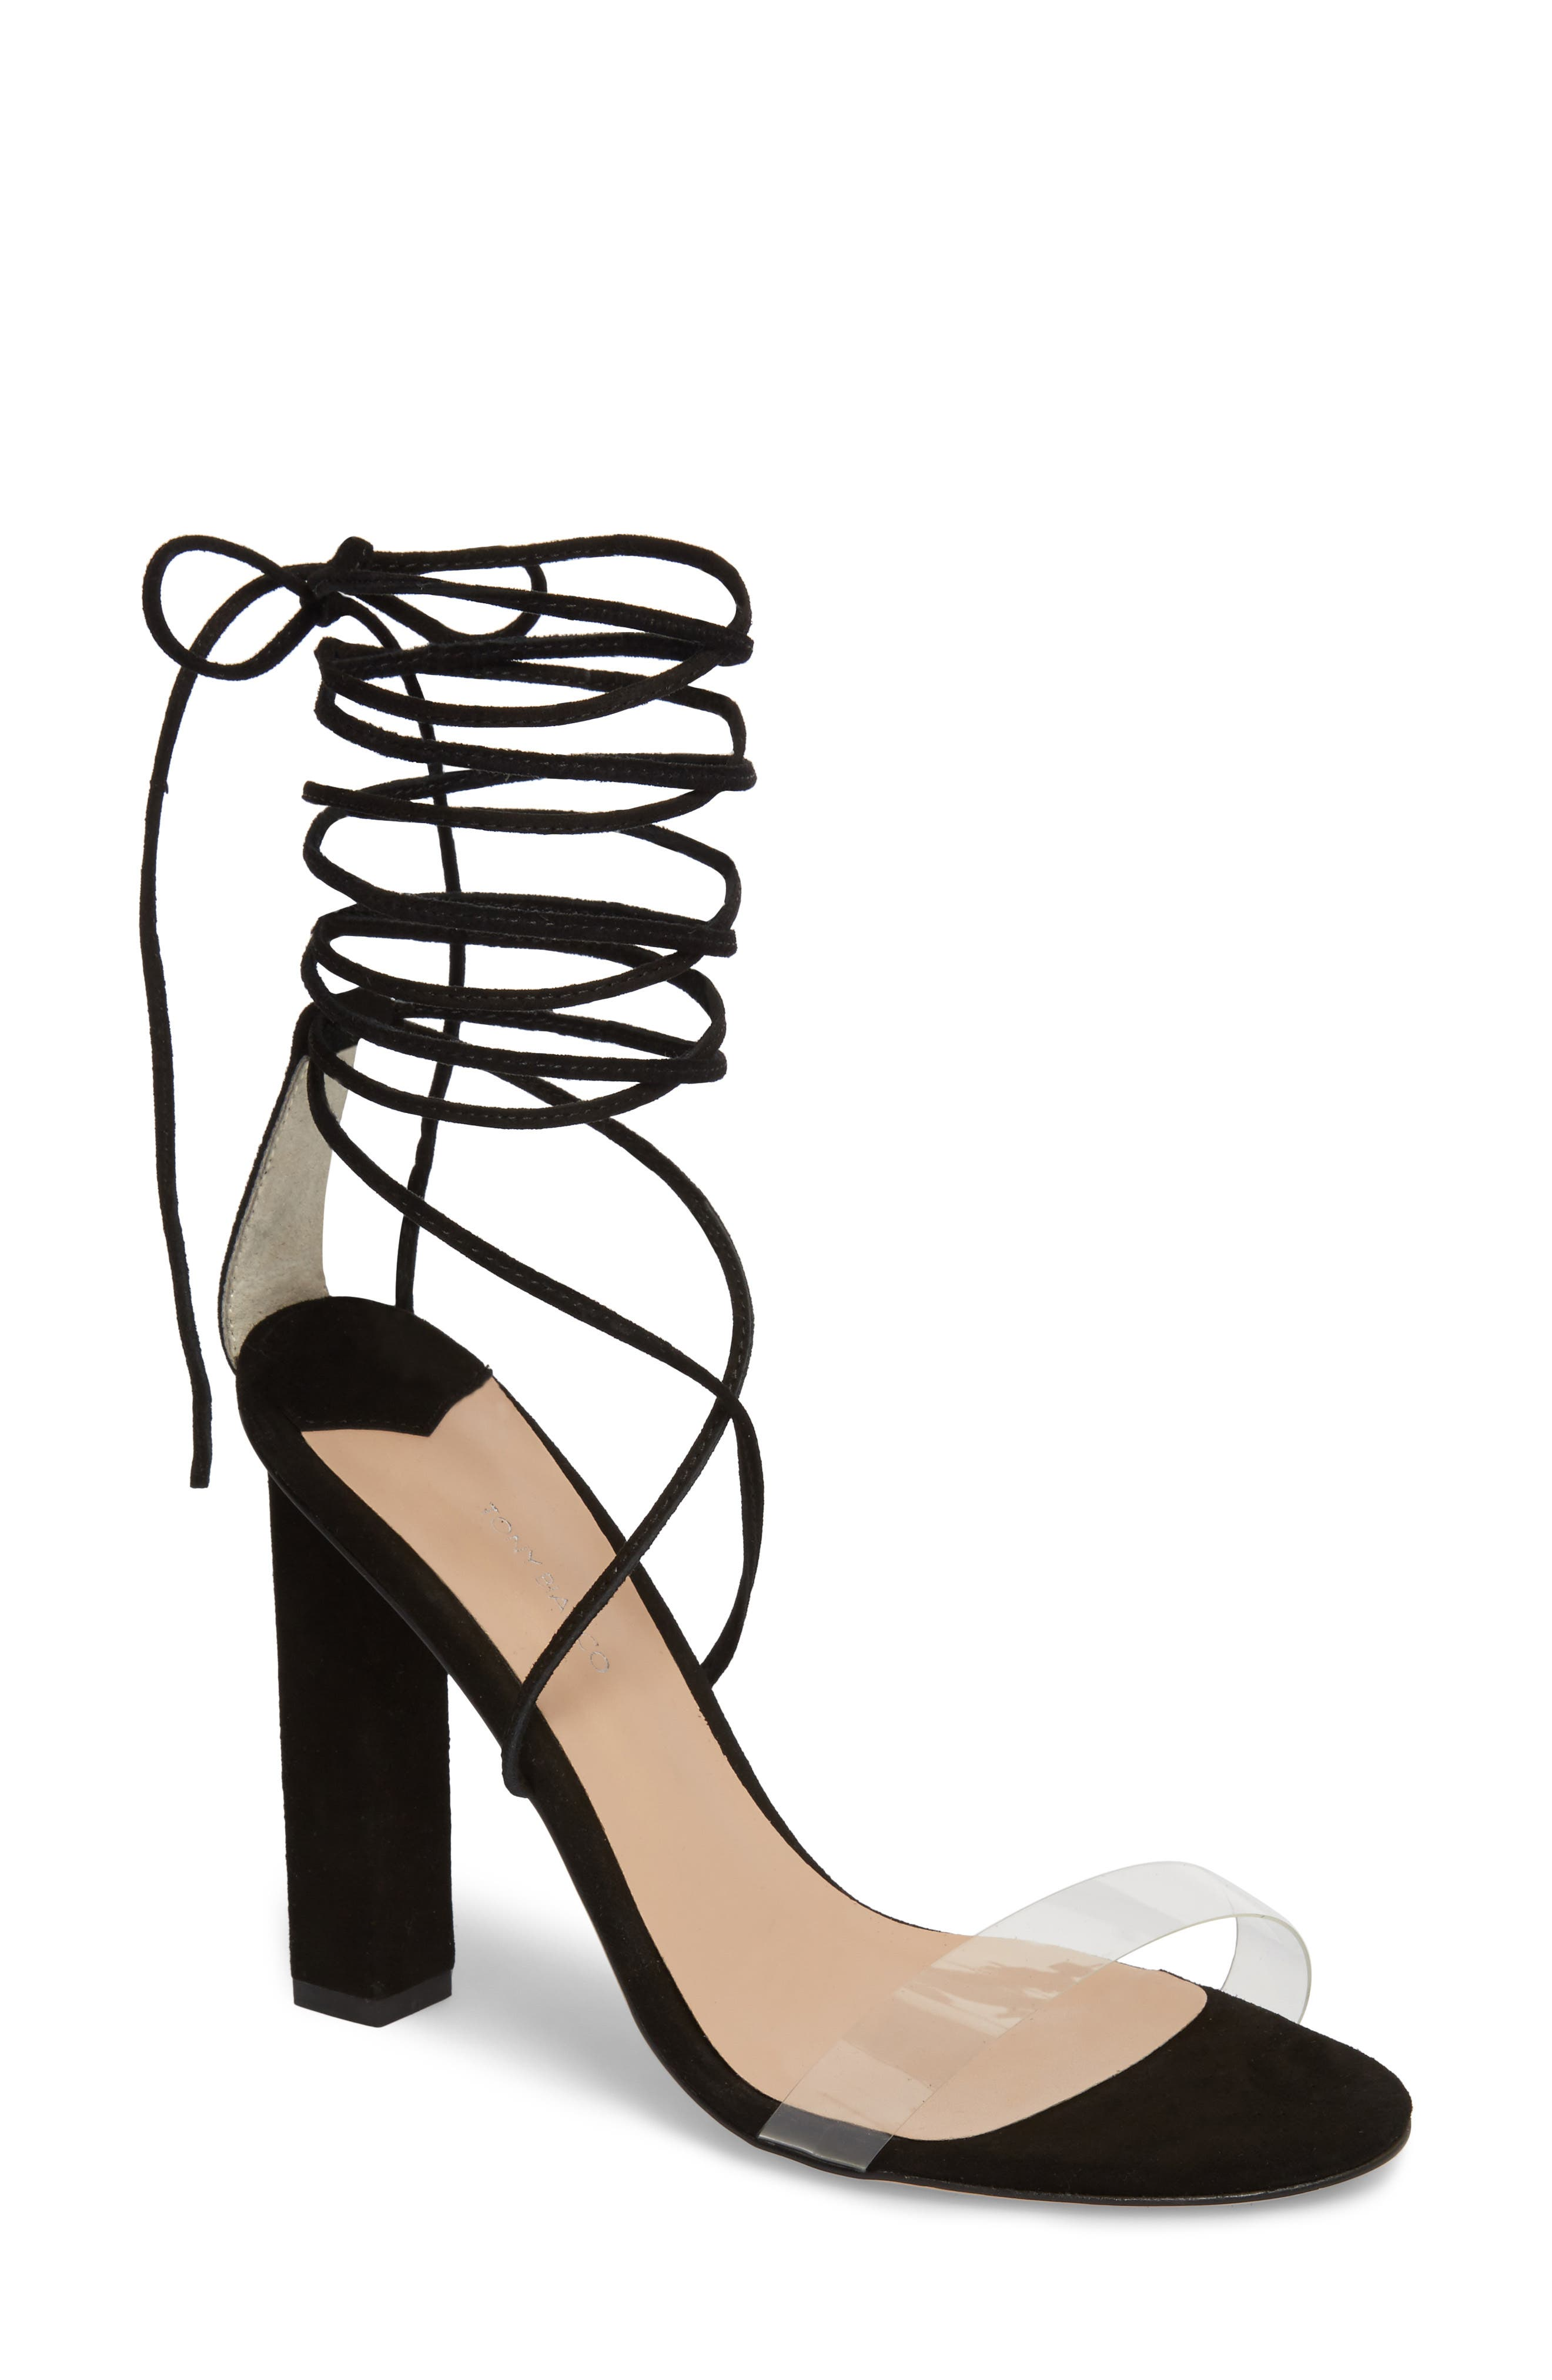 Kendall Ankle Tie Sandal,                             Main thumbnail 1, color,                             Clear/ Black Suede